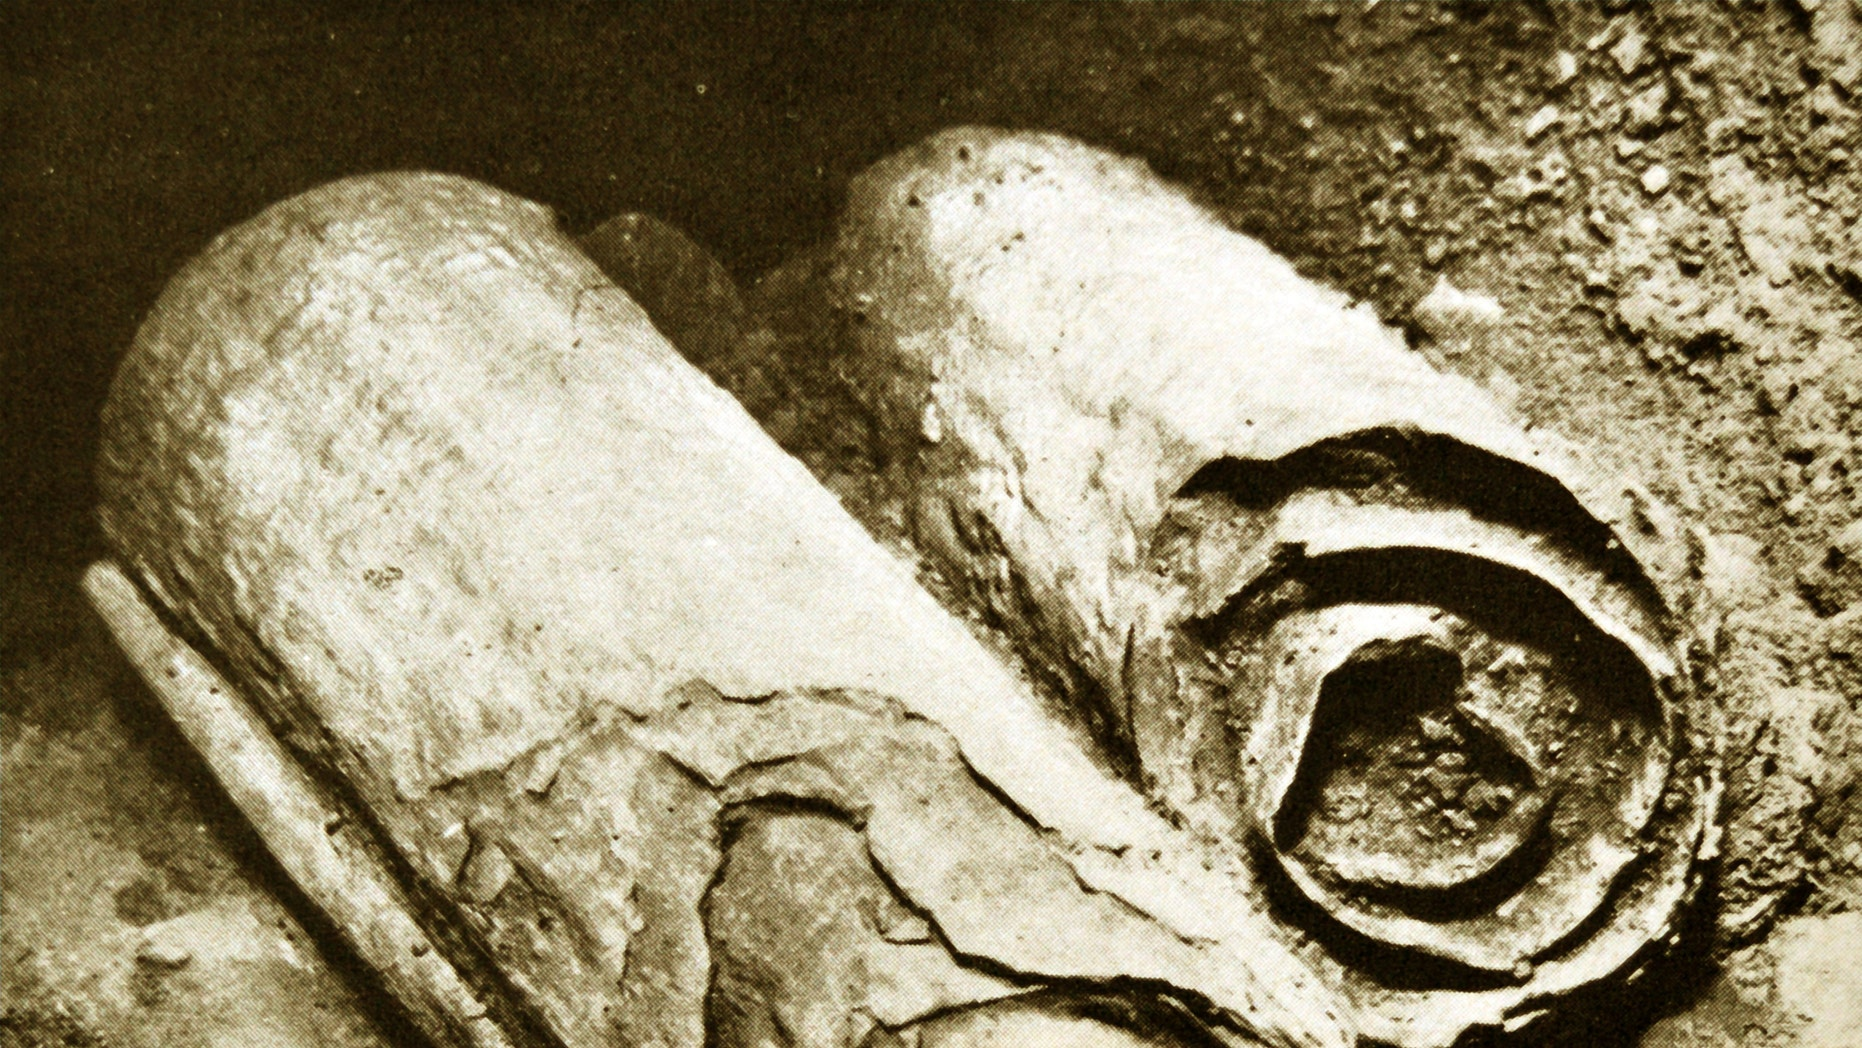 An excavation of The Dead Sea Scrolls in 1947.